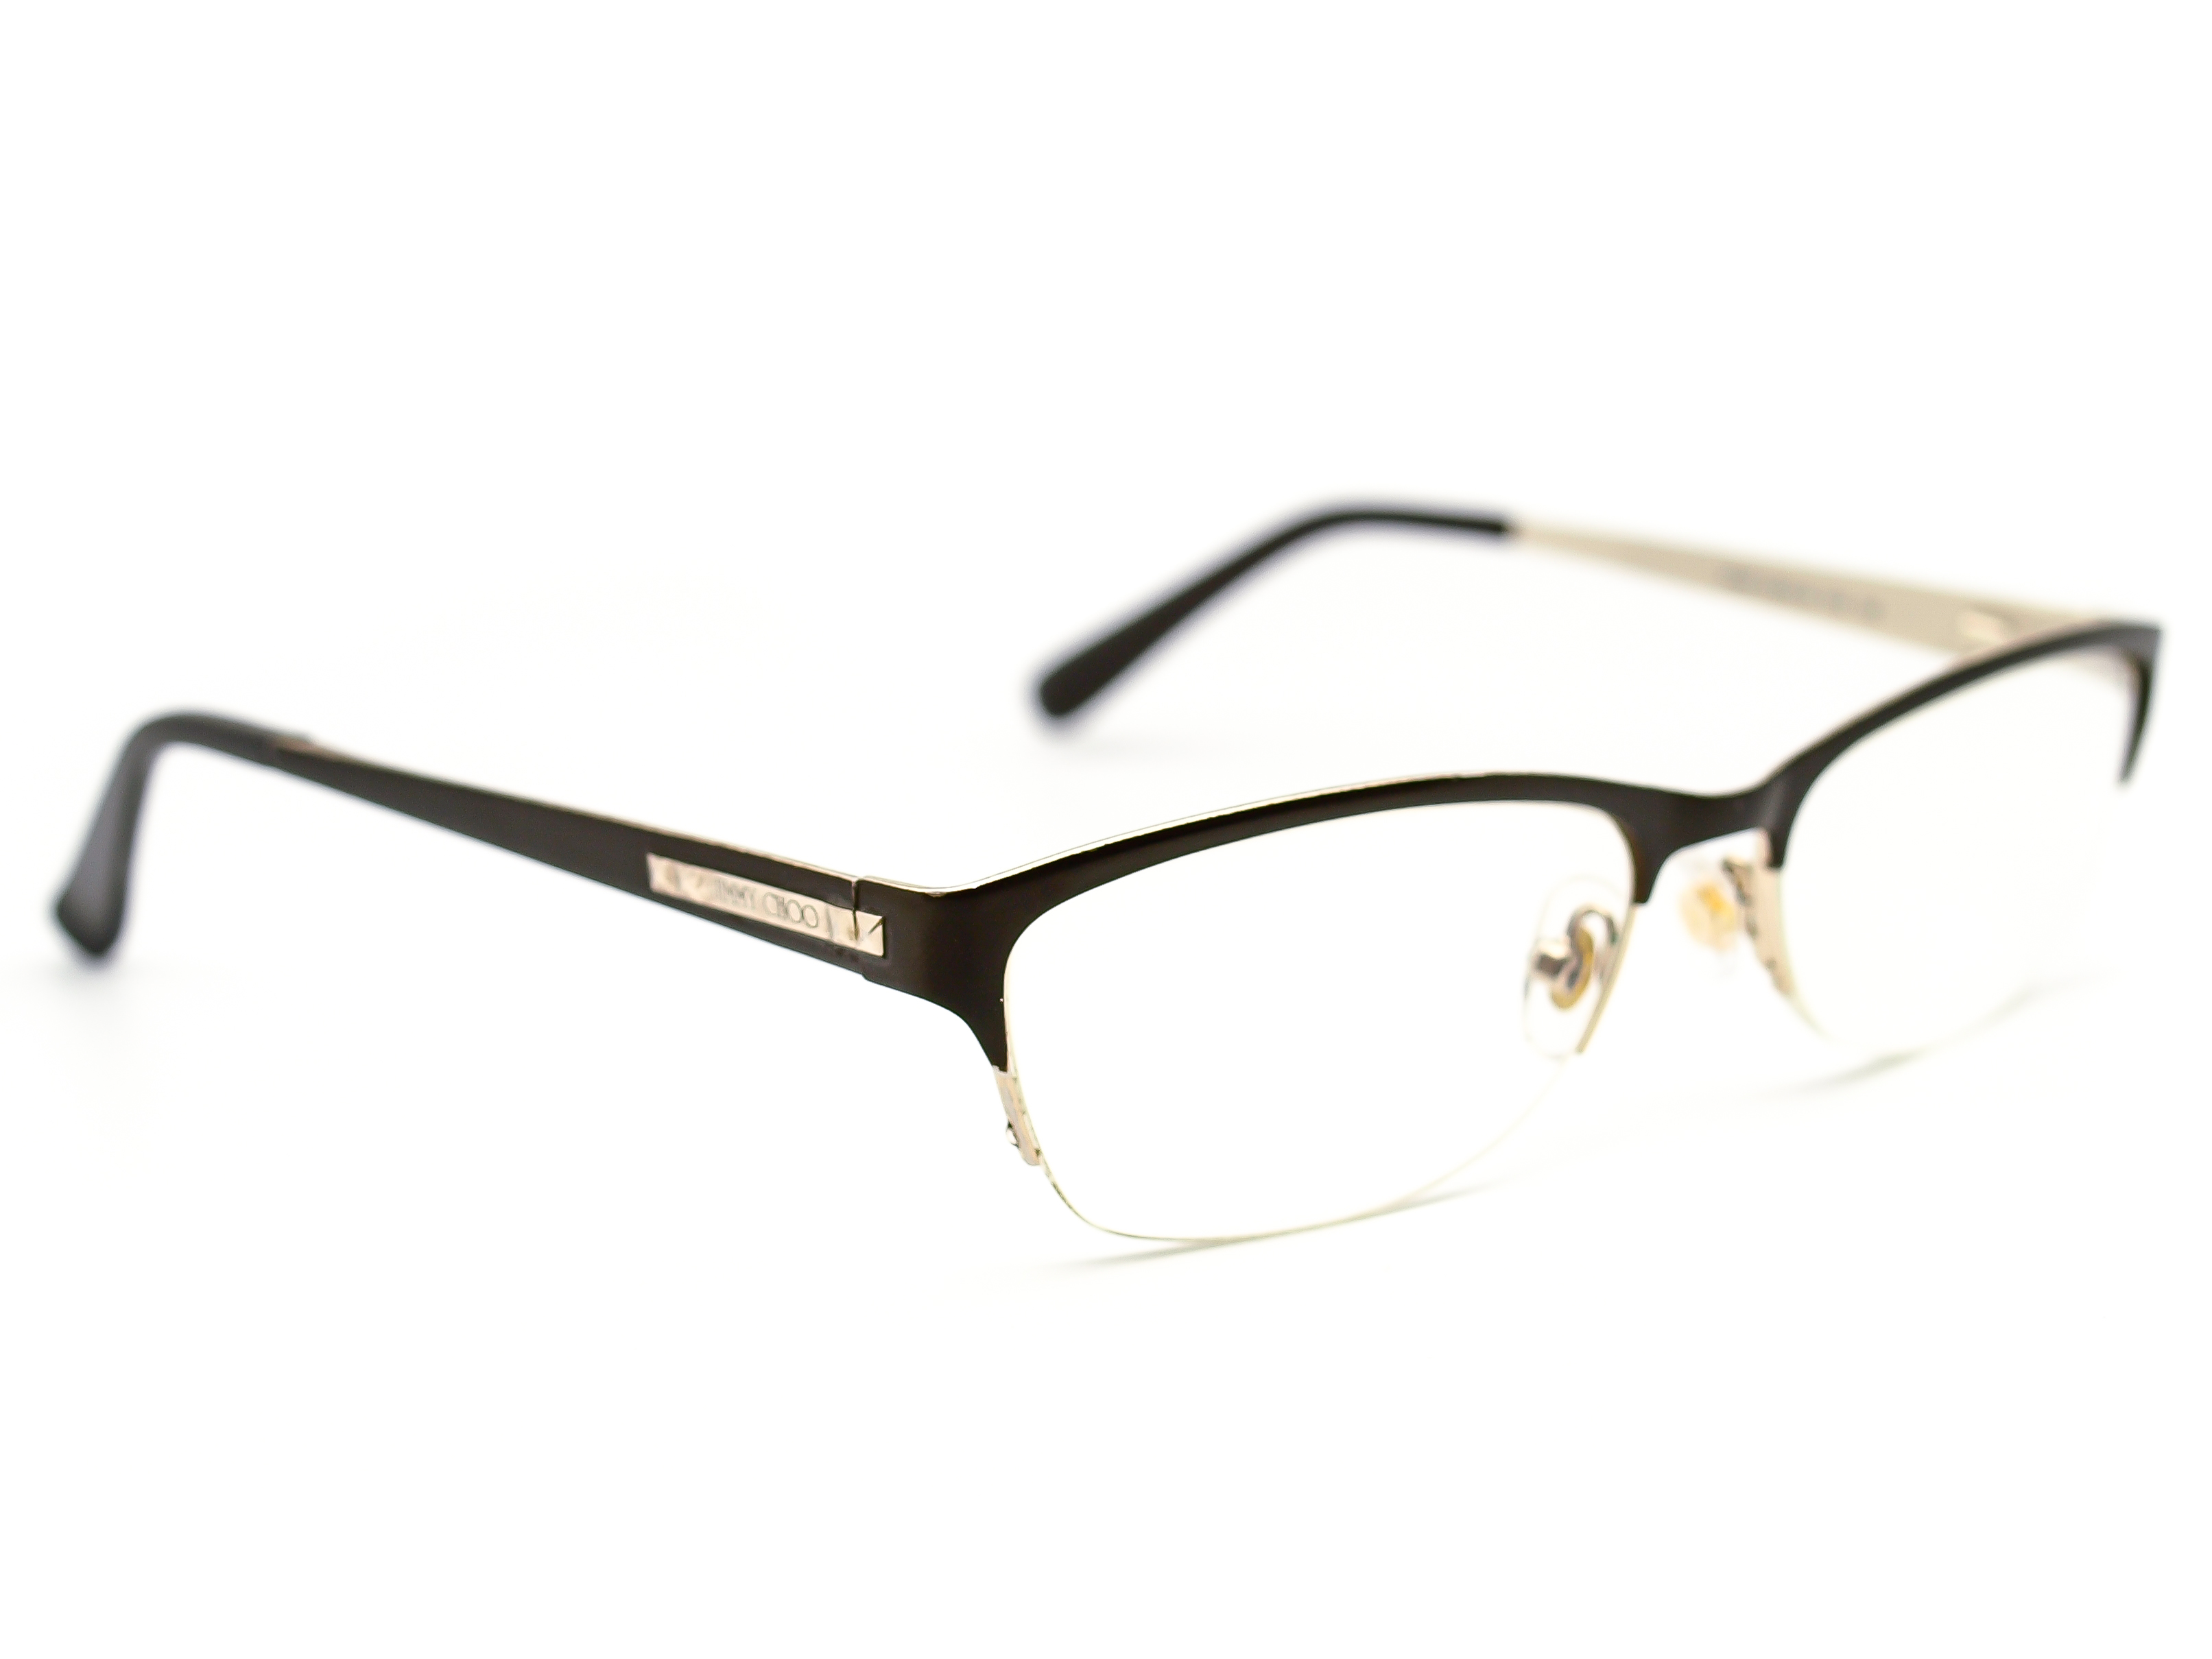 Jimmy Choo 58 FZ6 Eyeglasses